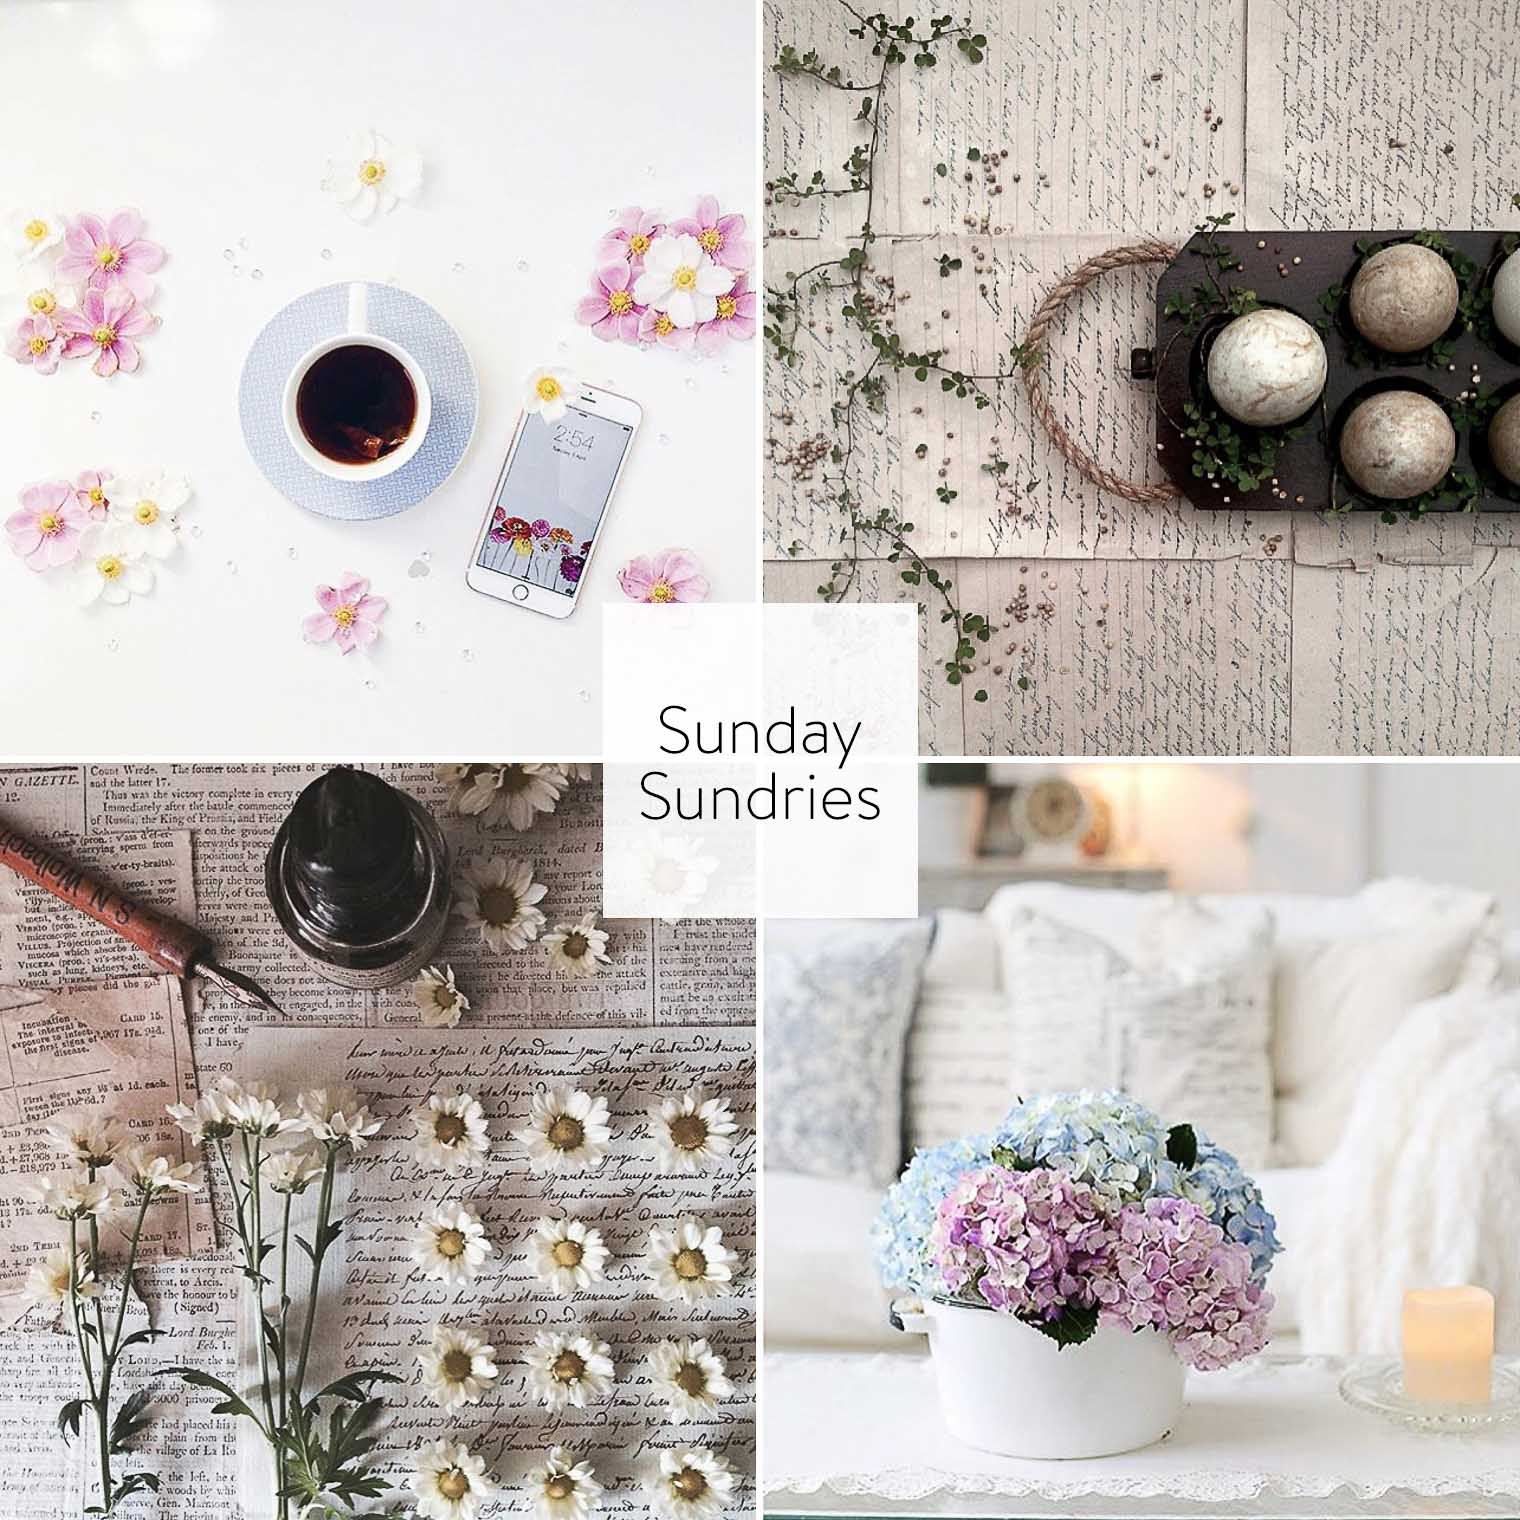 Sunday Sundries April 17, Keeping With the Times